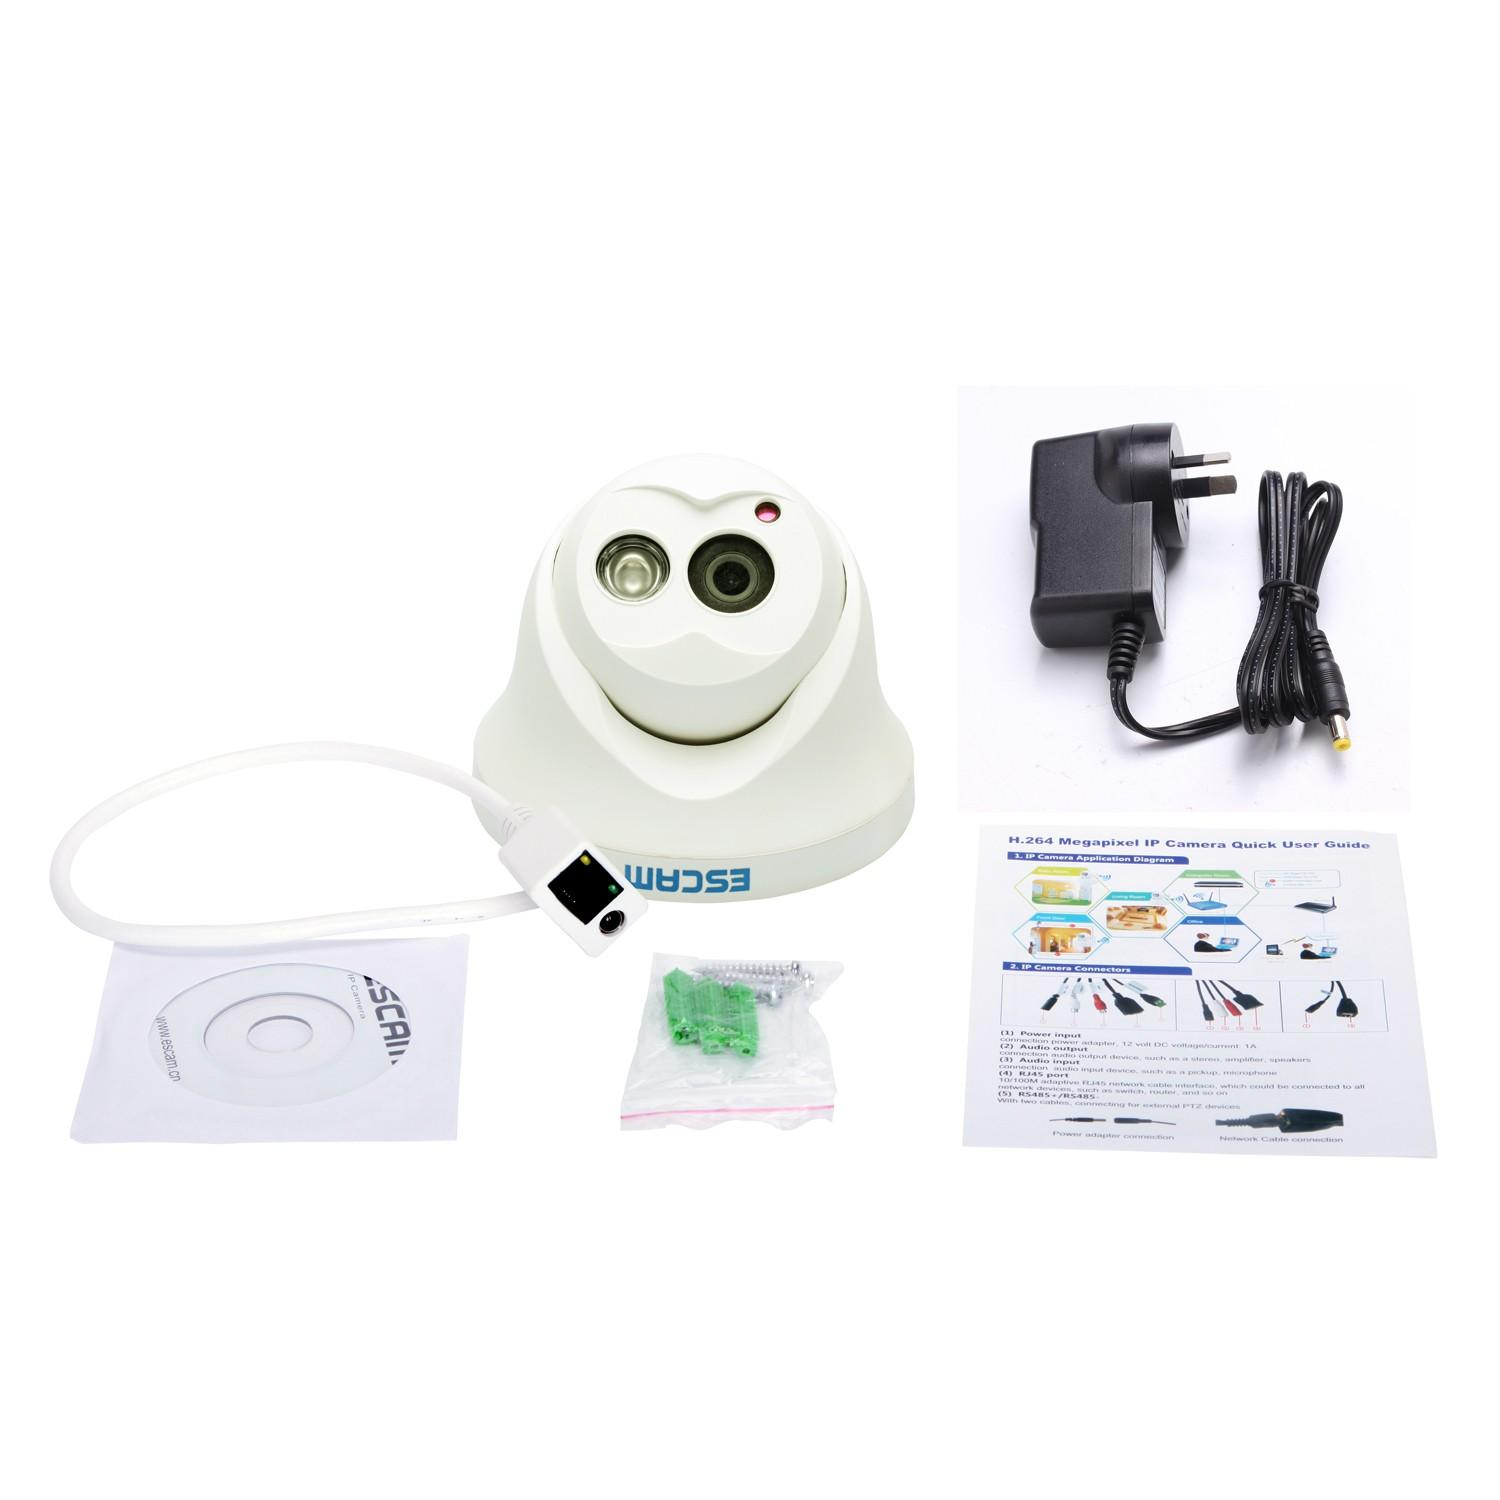 Escam QD100 OWL 720p Security IP Camera with ONVIF, Night Vision, Motion Detection